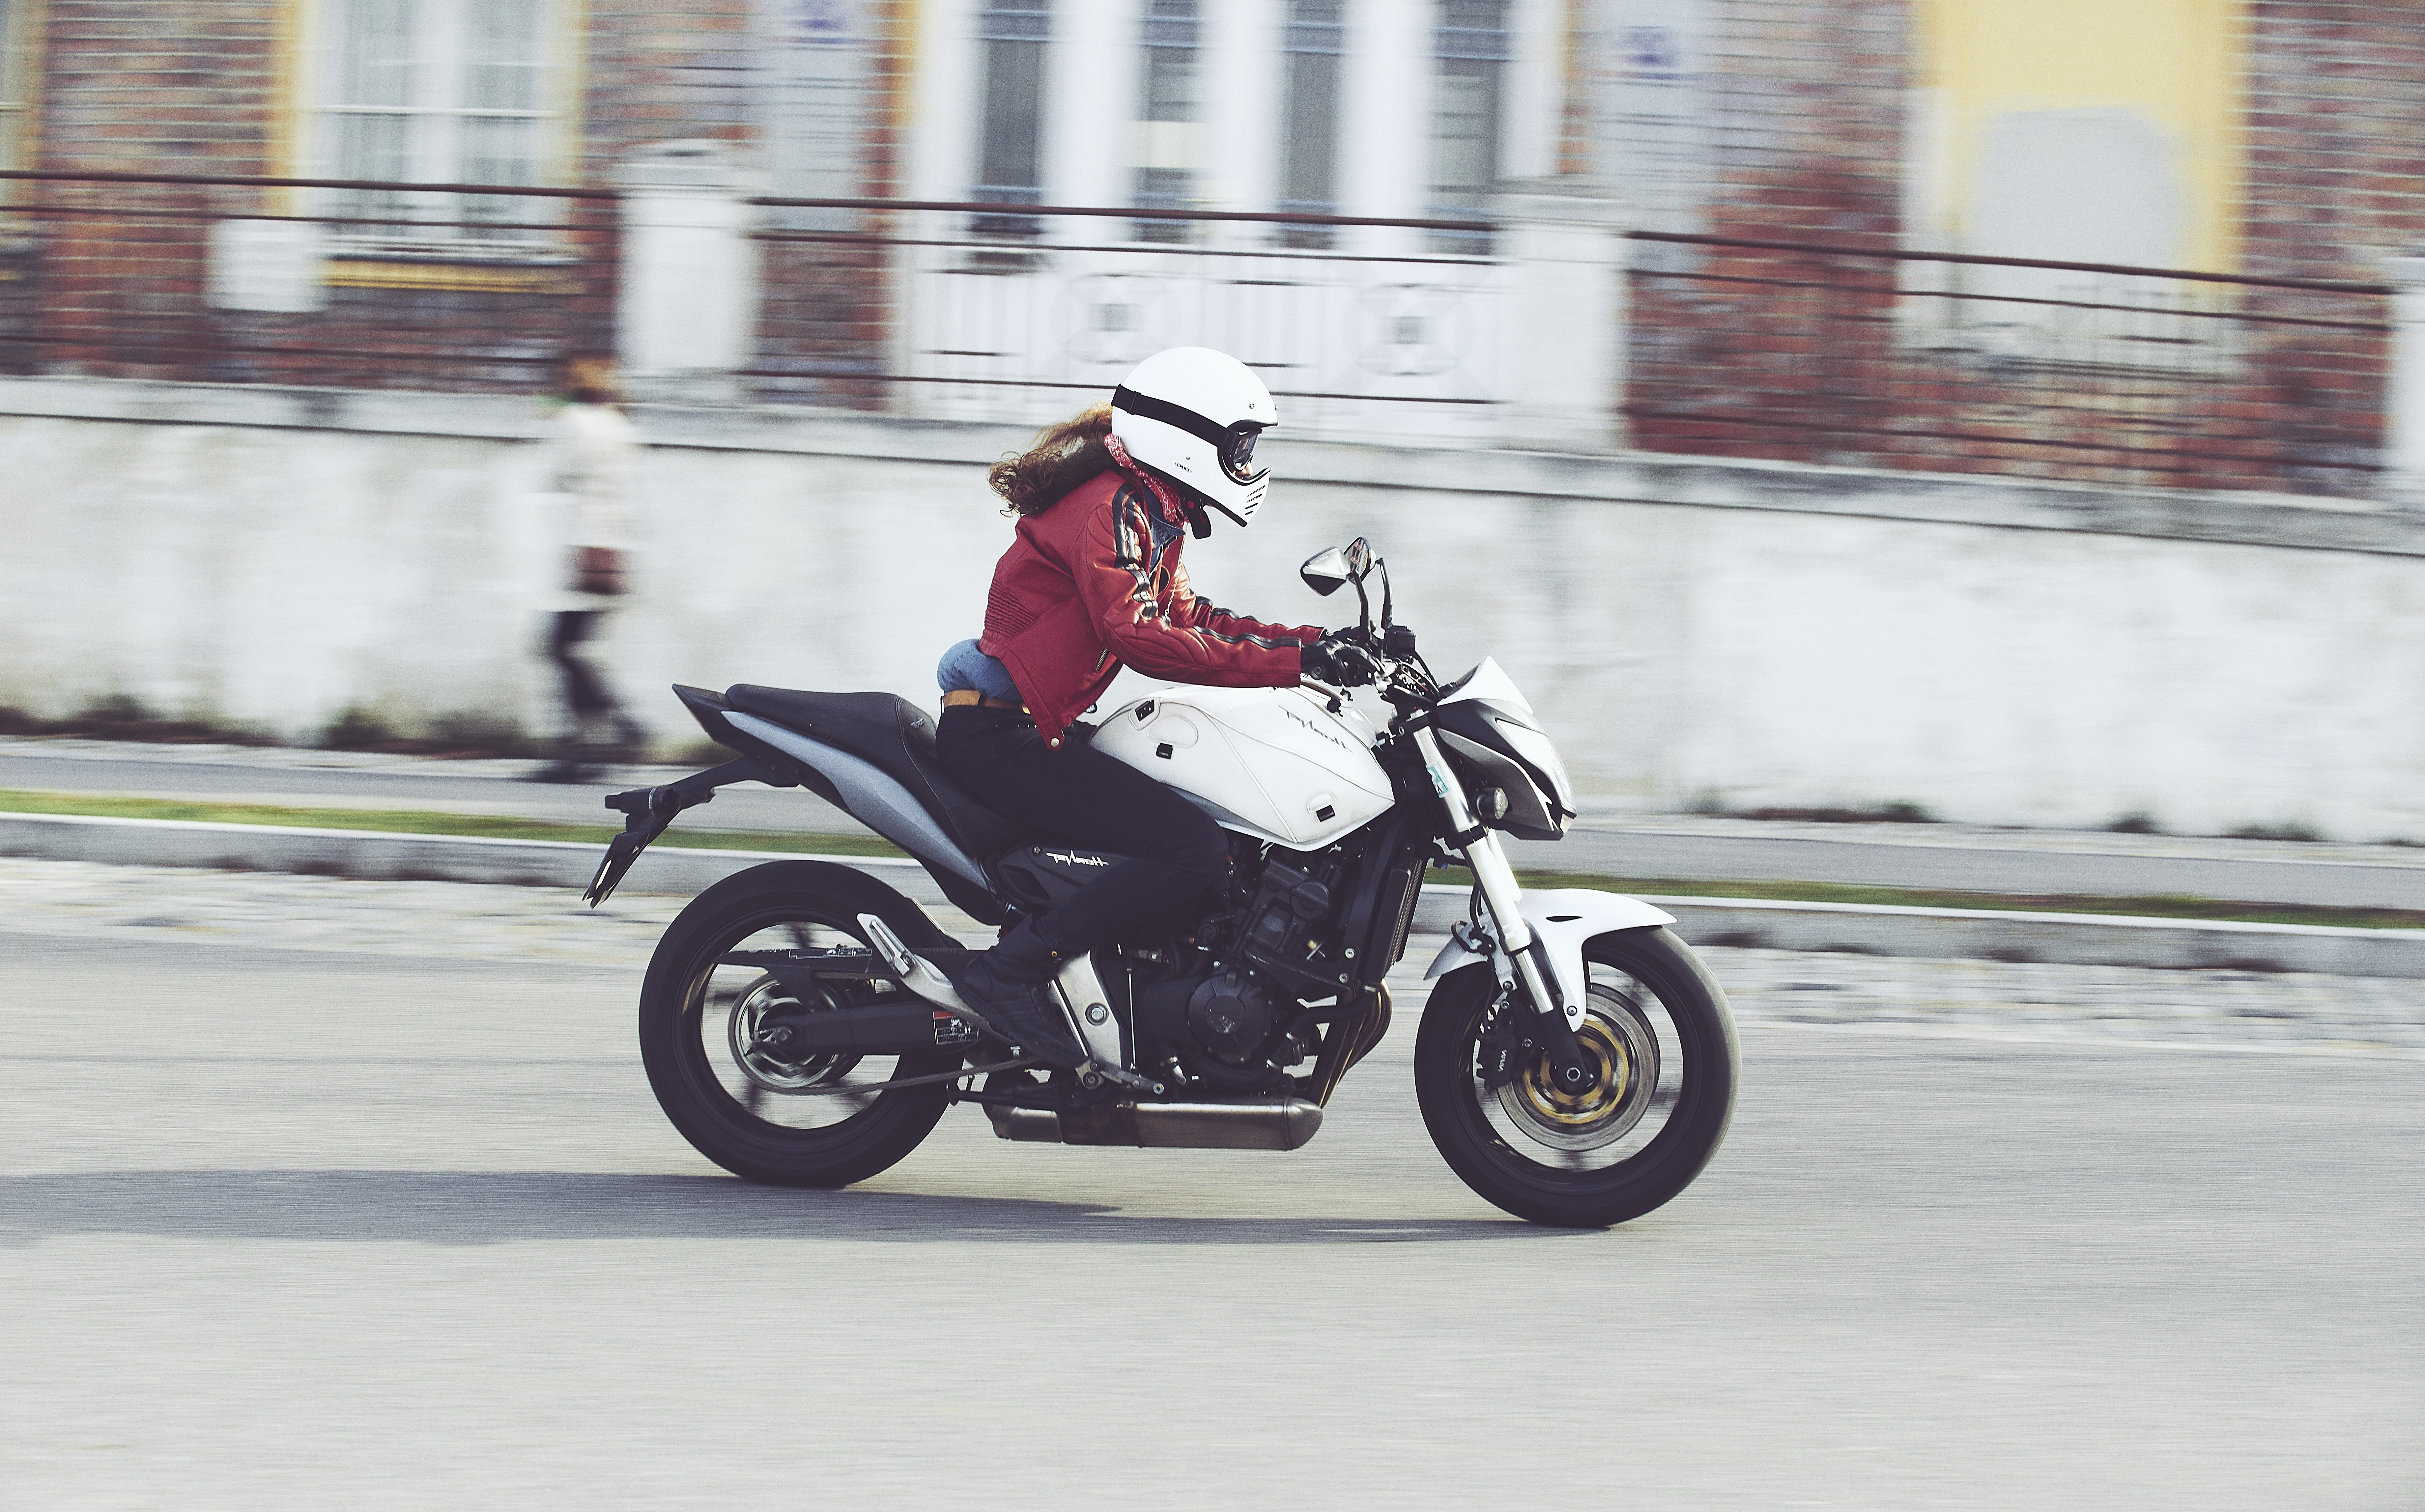 Jenna Philippe with her Hornet 600 moto rider on tour